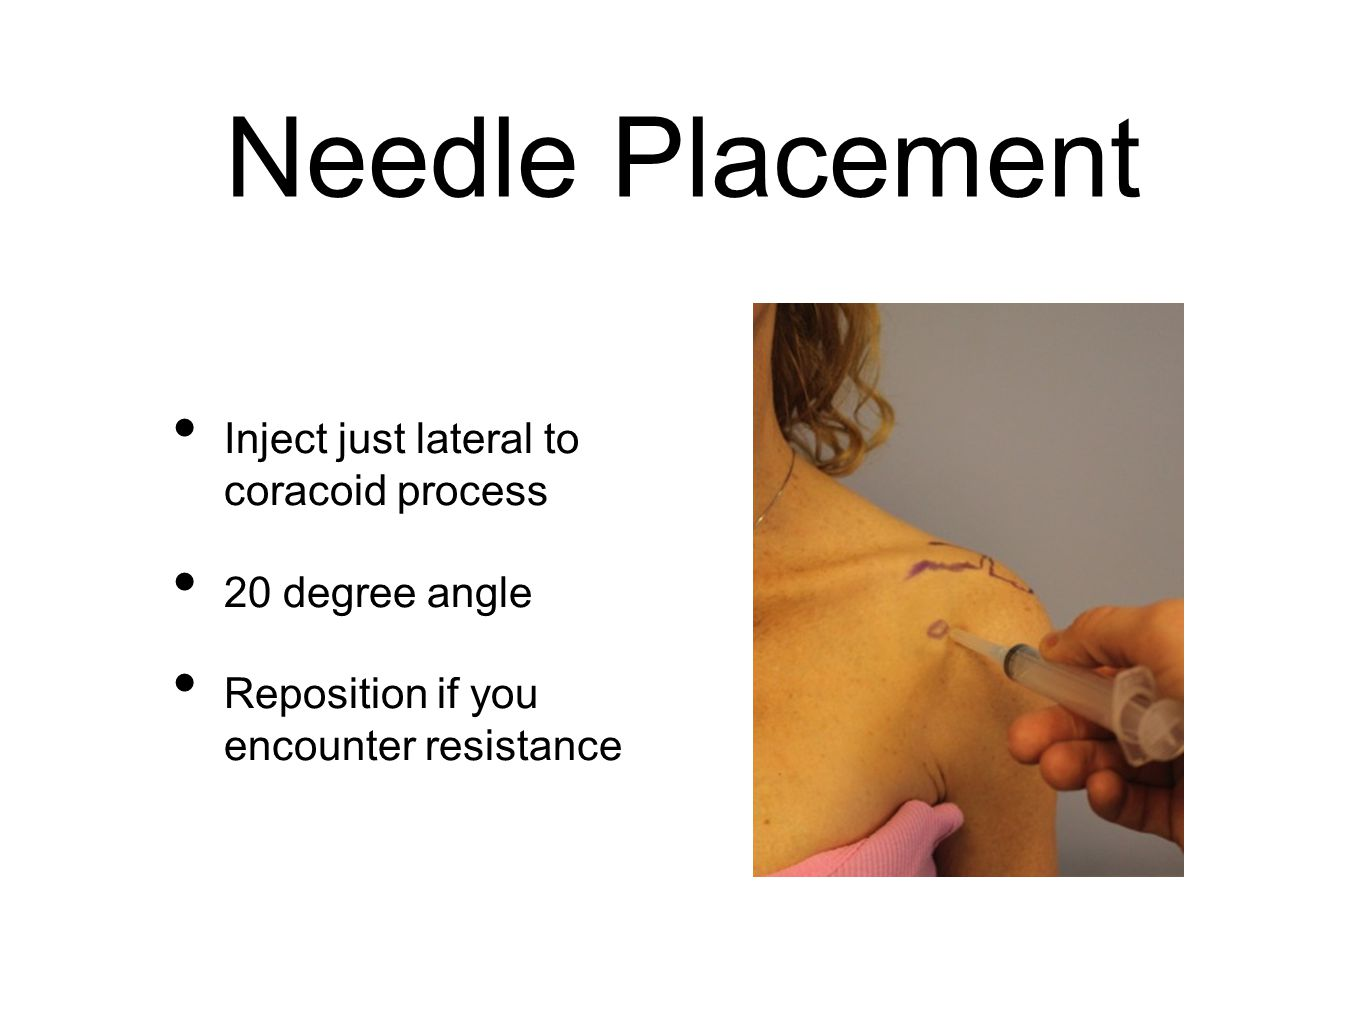 Needle Placement Inject just lateral to coracoid process 20 degree angle Reposition if you encounter resistance